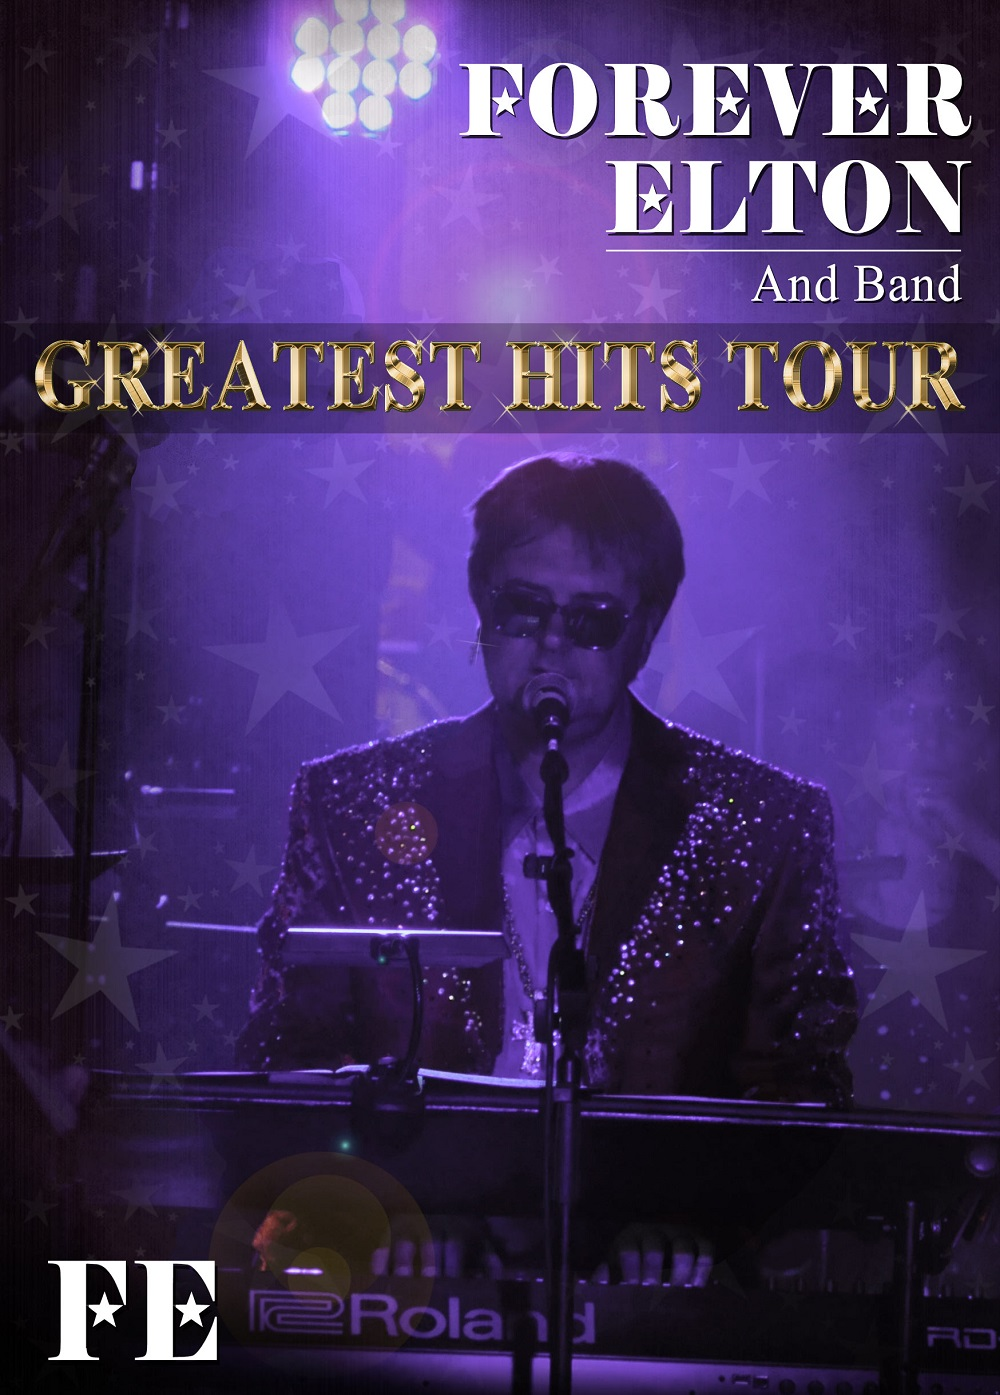 Forever Elton and band -A Homage to the music of Sir Elton John & Bernie Taupin